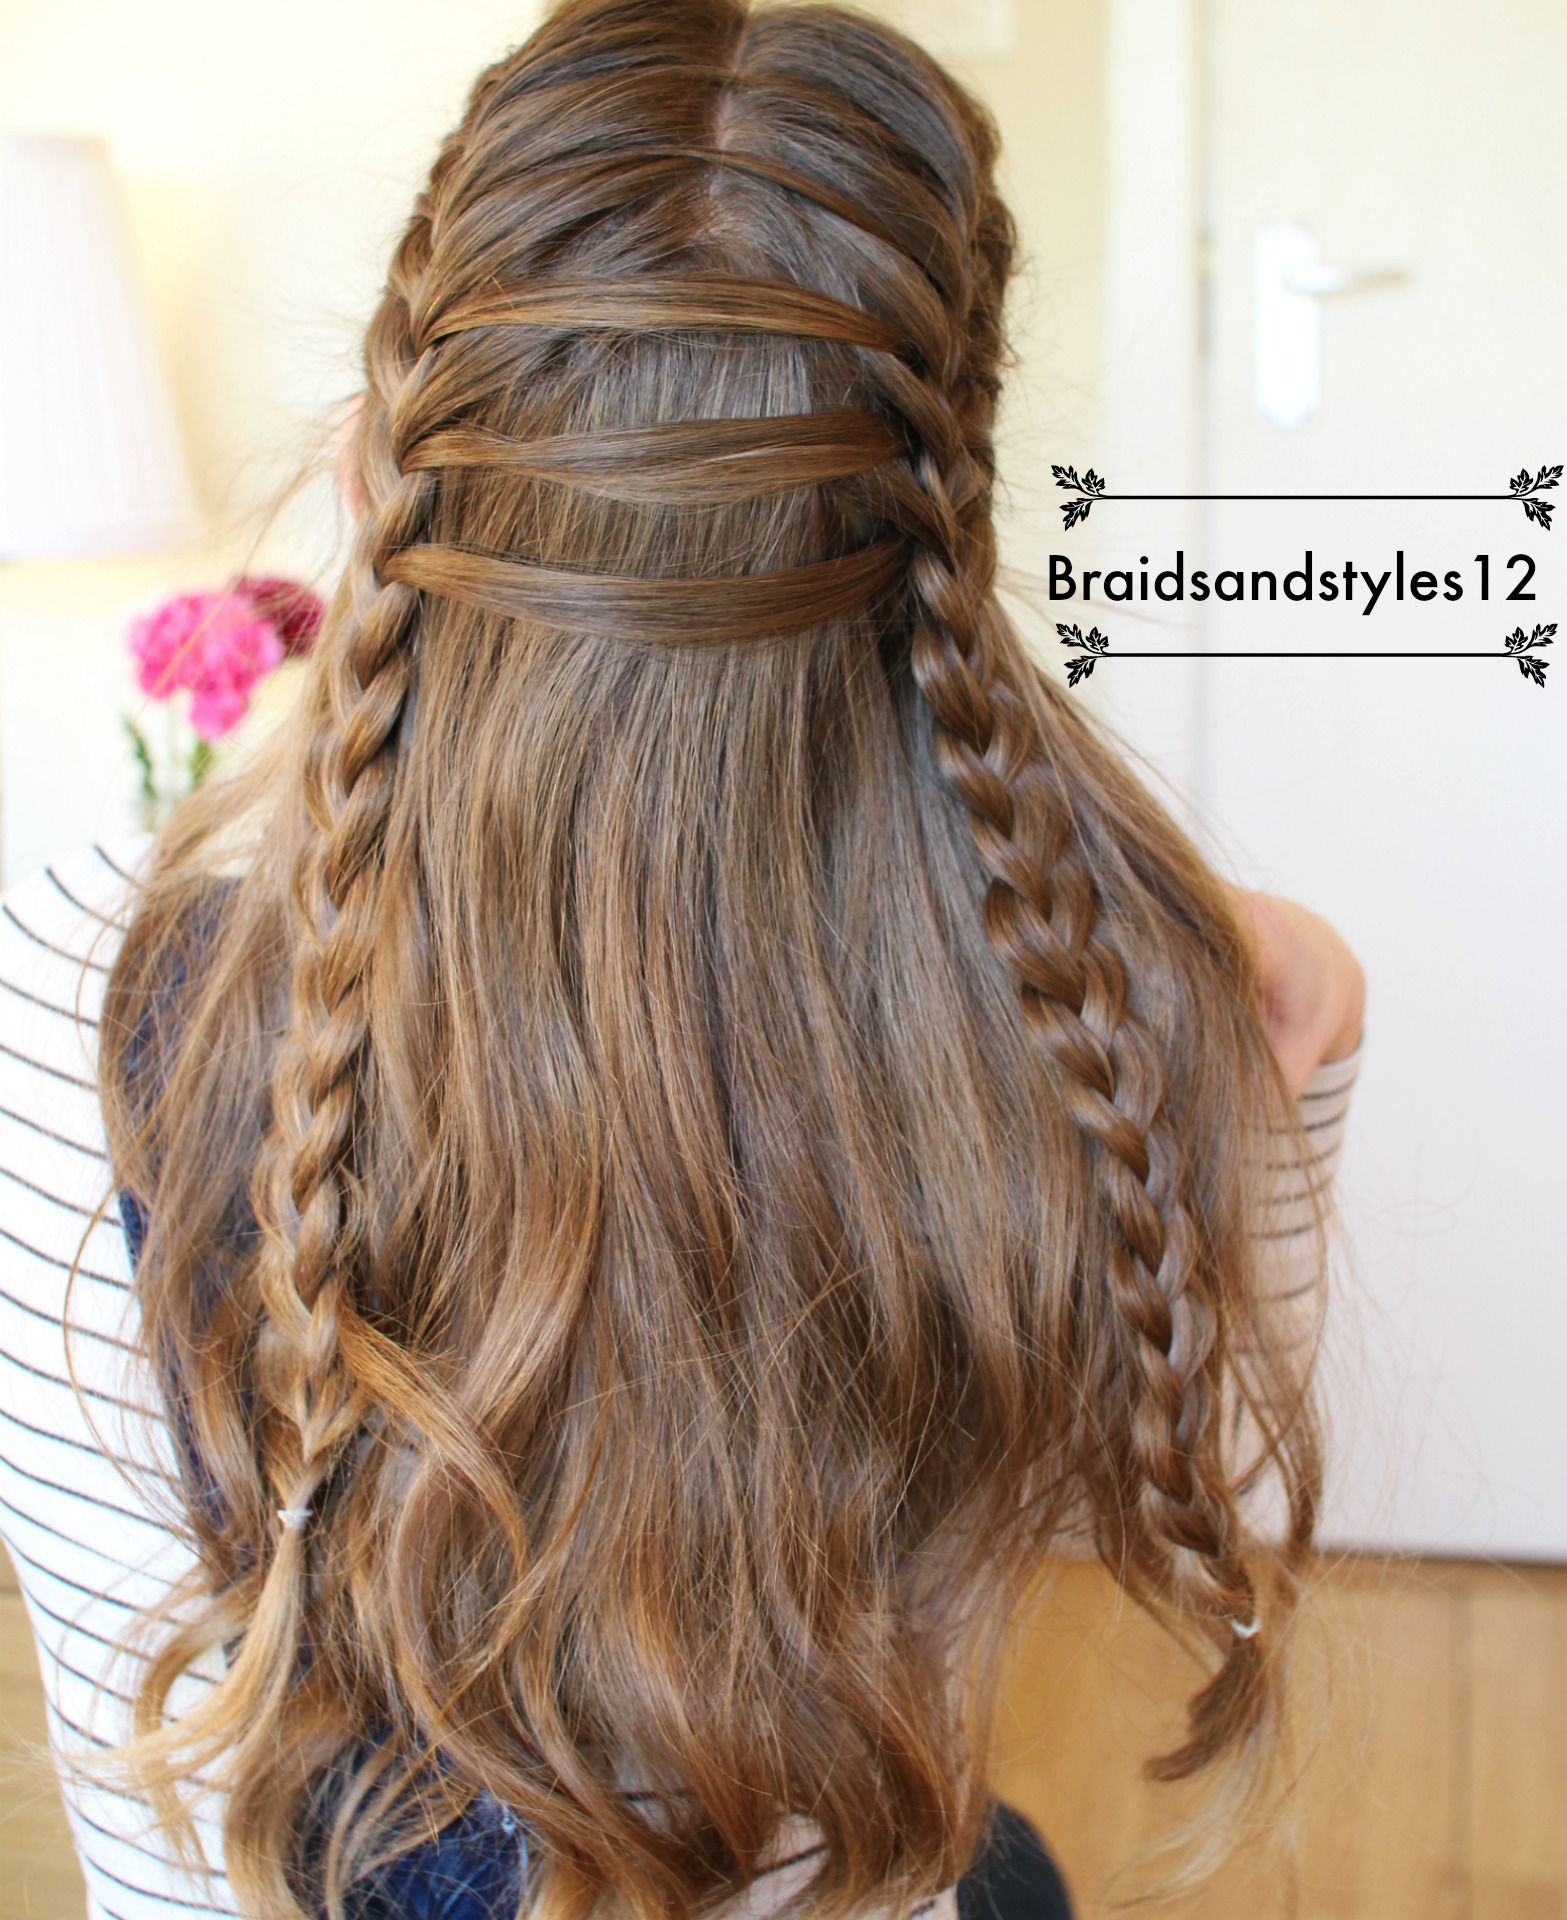 Heatless Hairstyles ideas by Braidsandstyles12 Braided Hairstyles